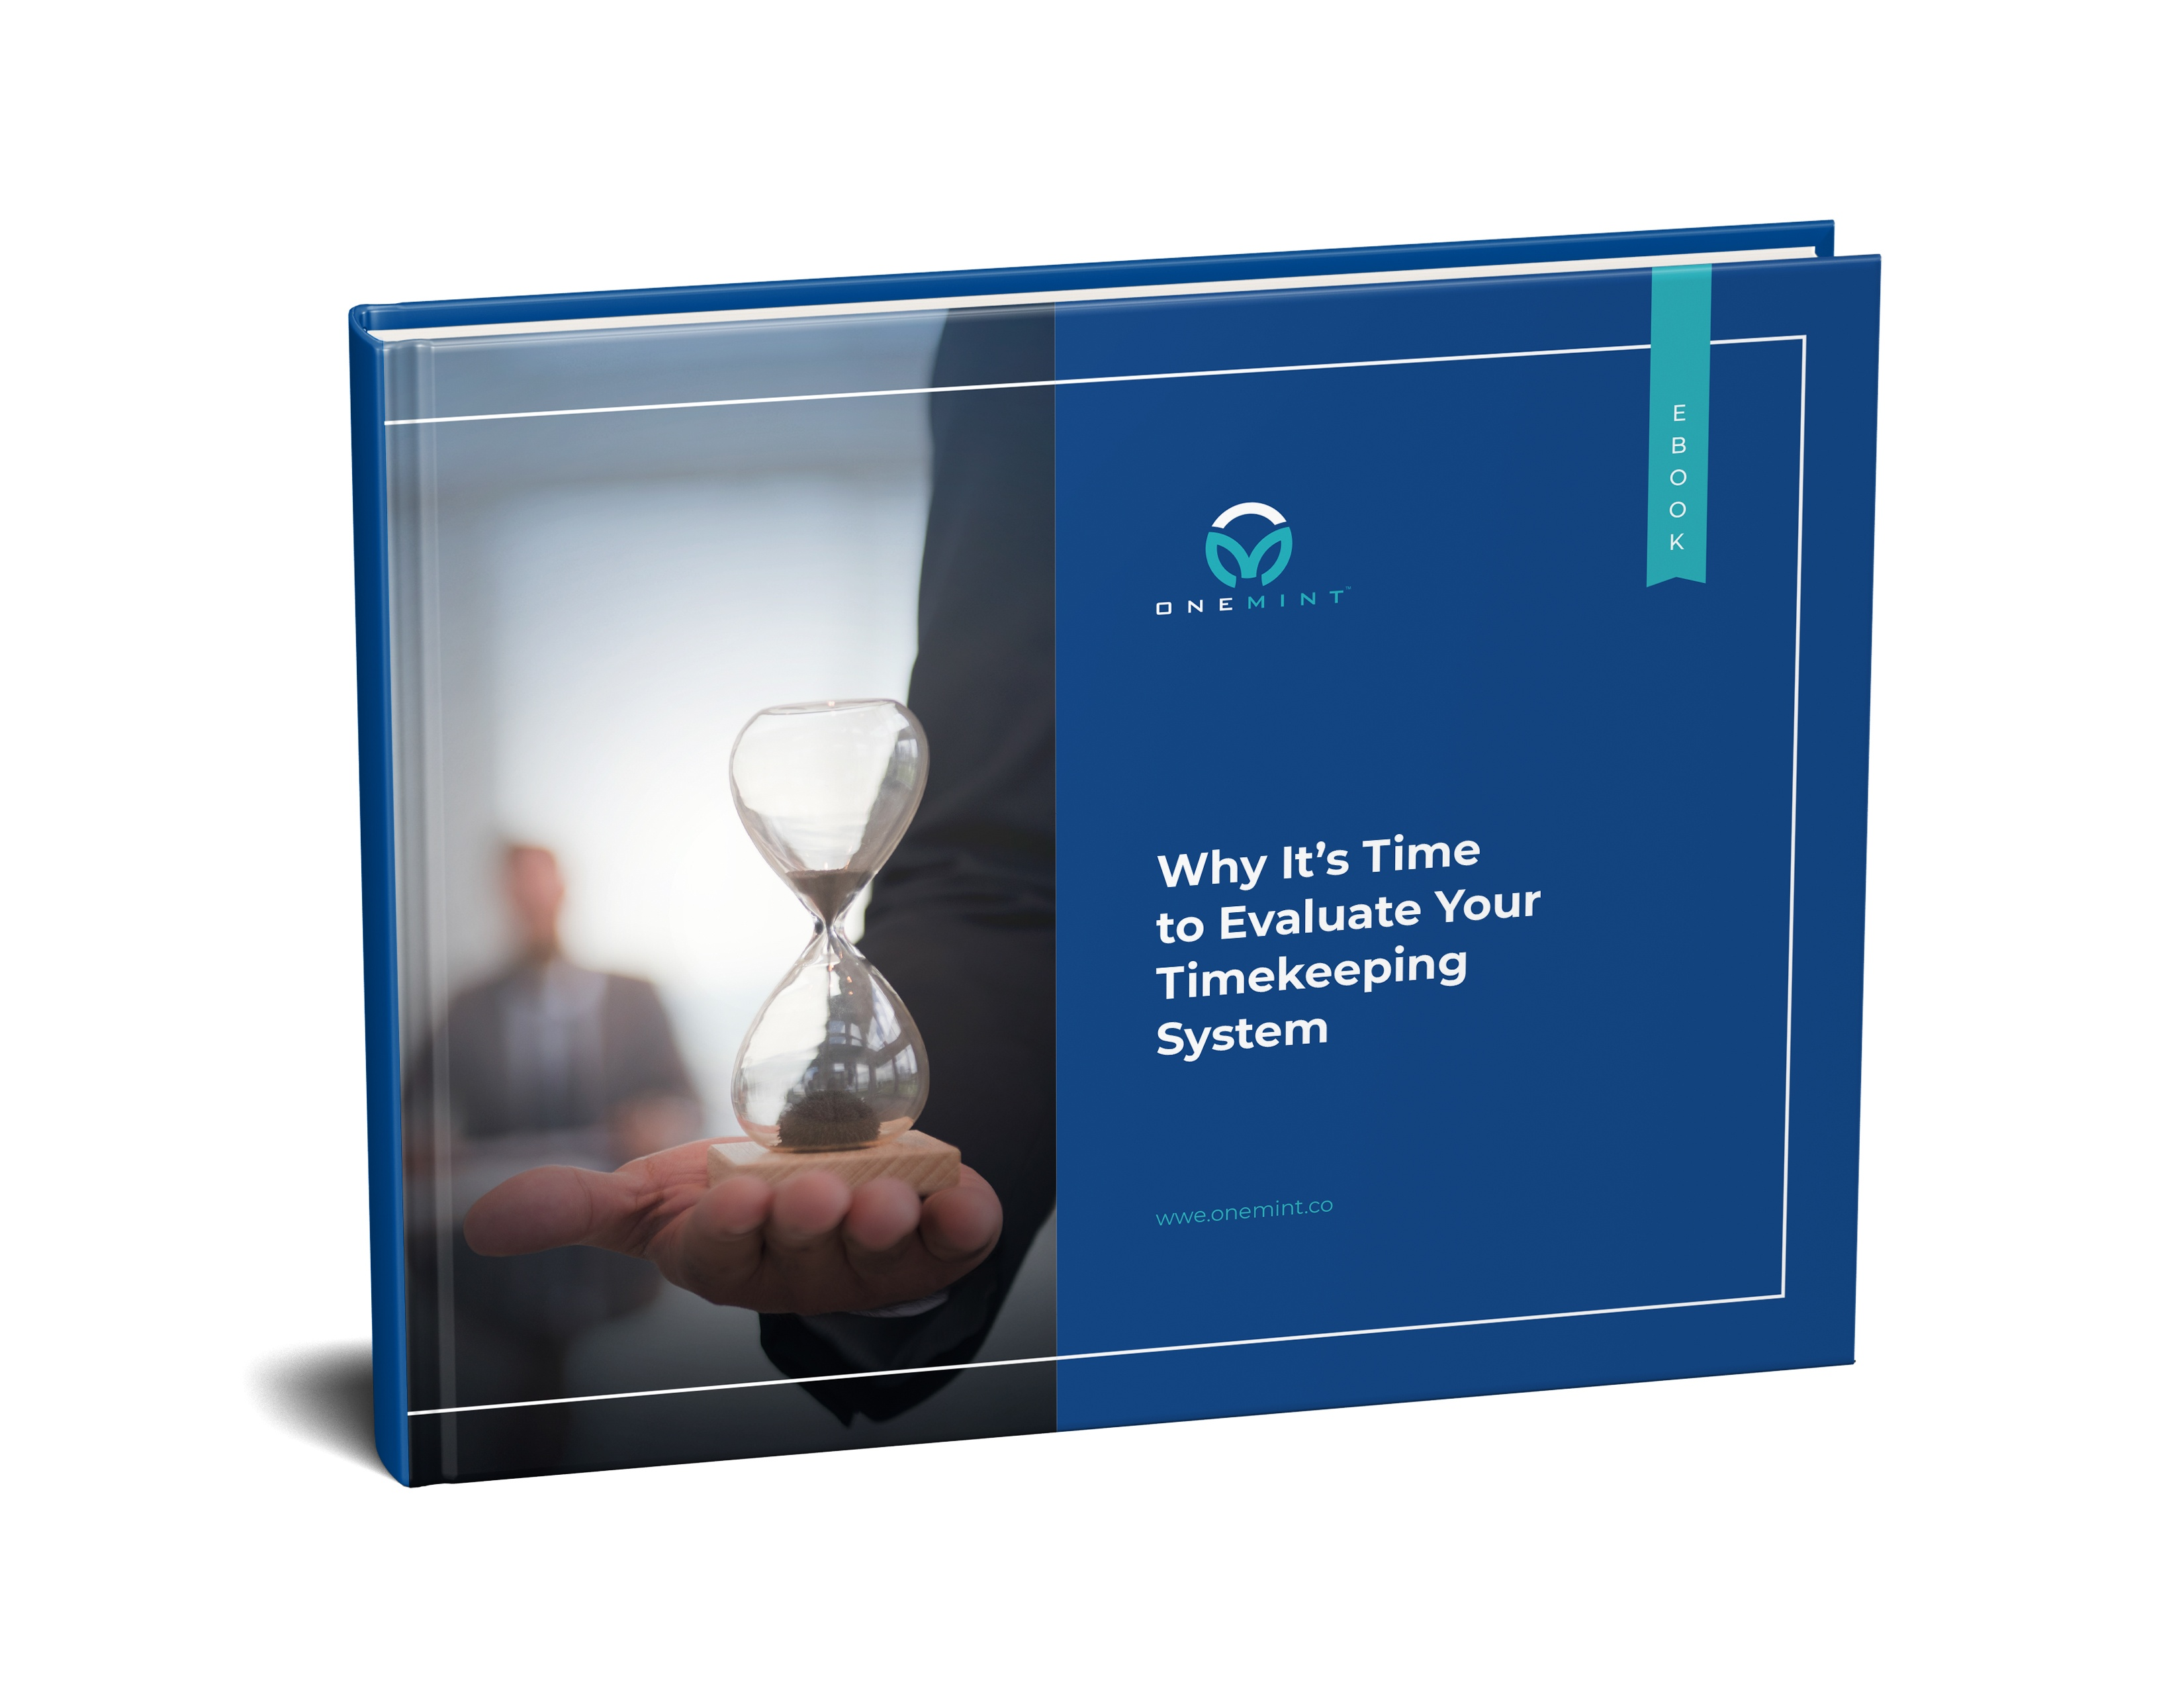 Why It's Time to Evaluate Your Timekeeping System